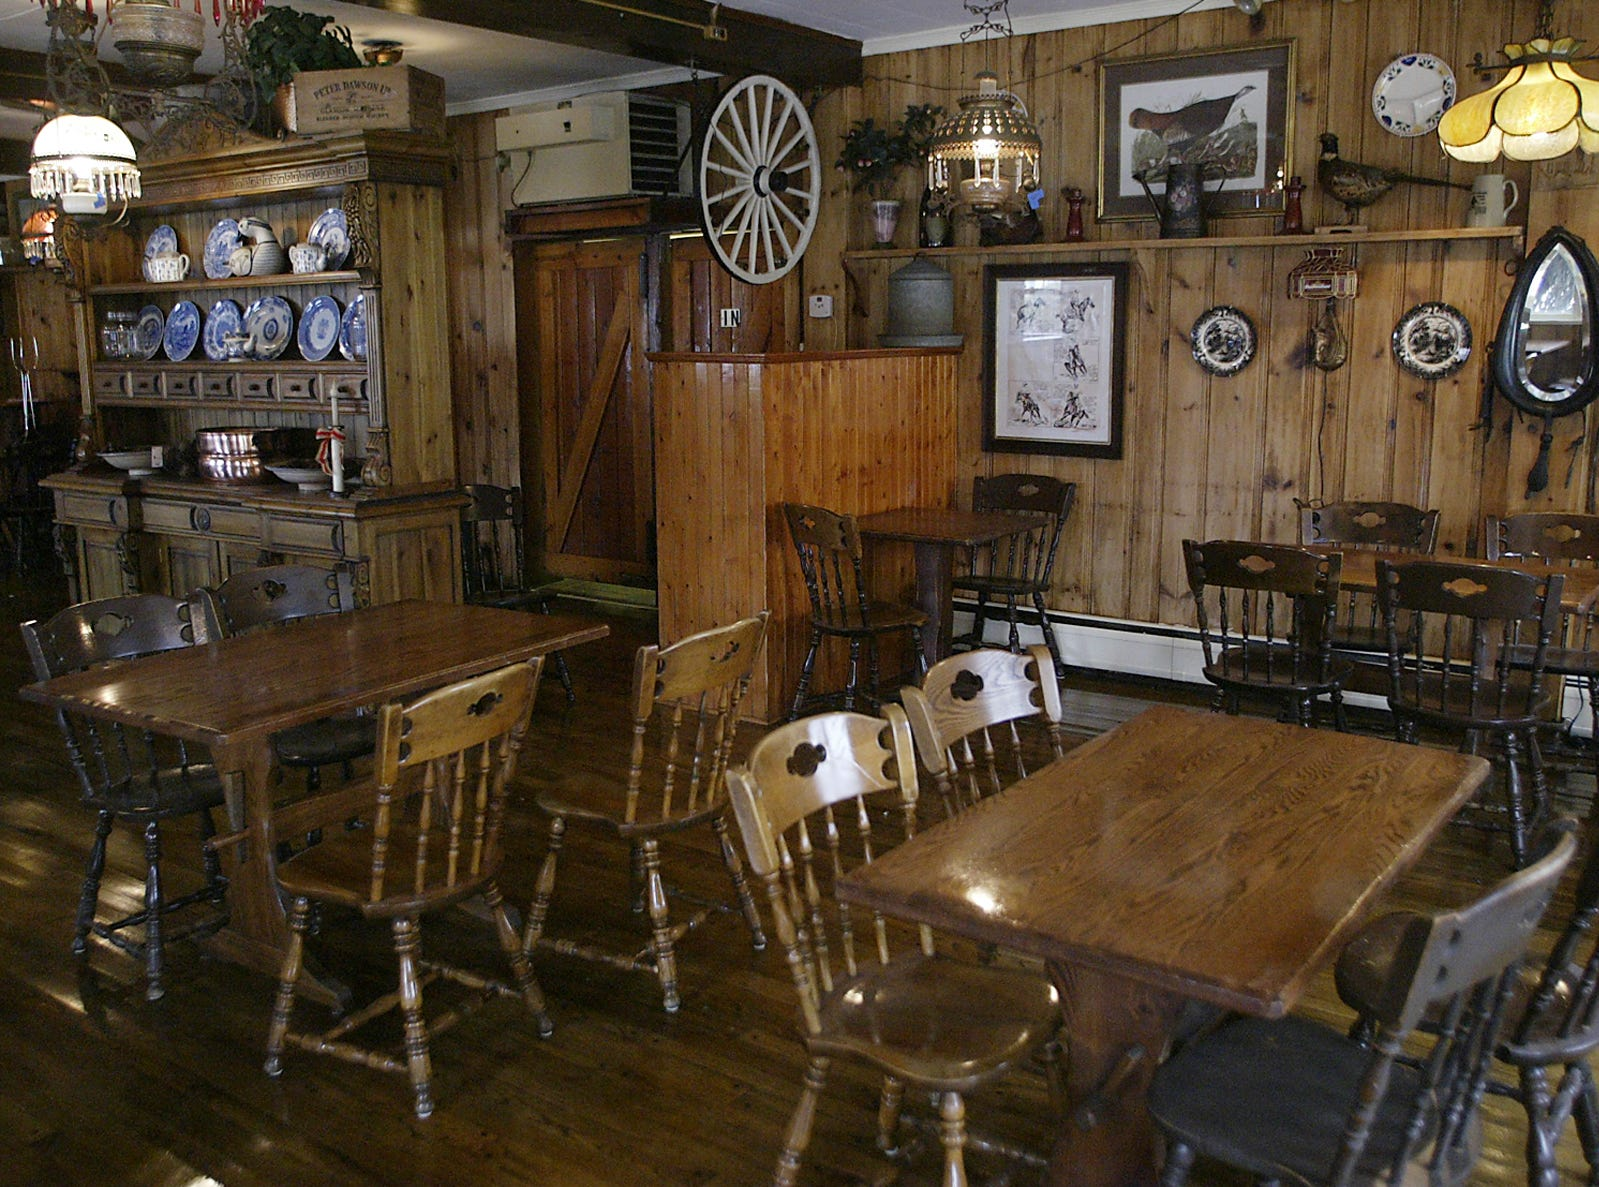 The main dinning room at the Puddingstone Inn, the old Larison's Turkey Farm.   2007